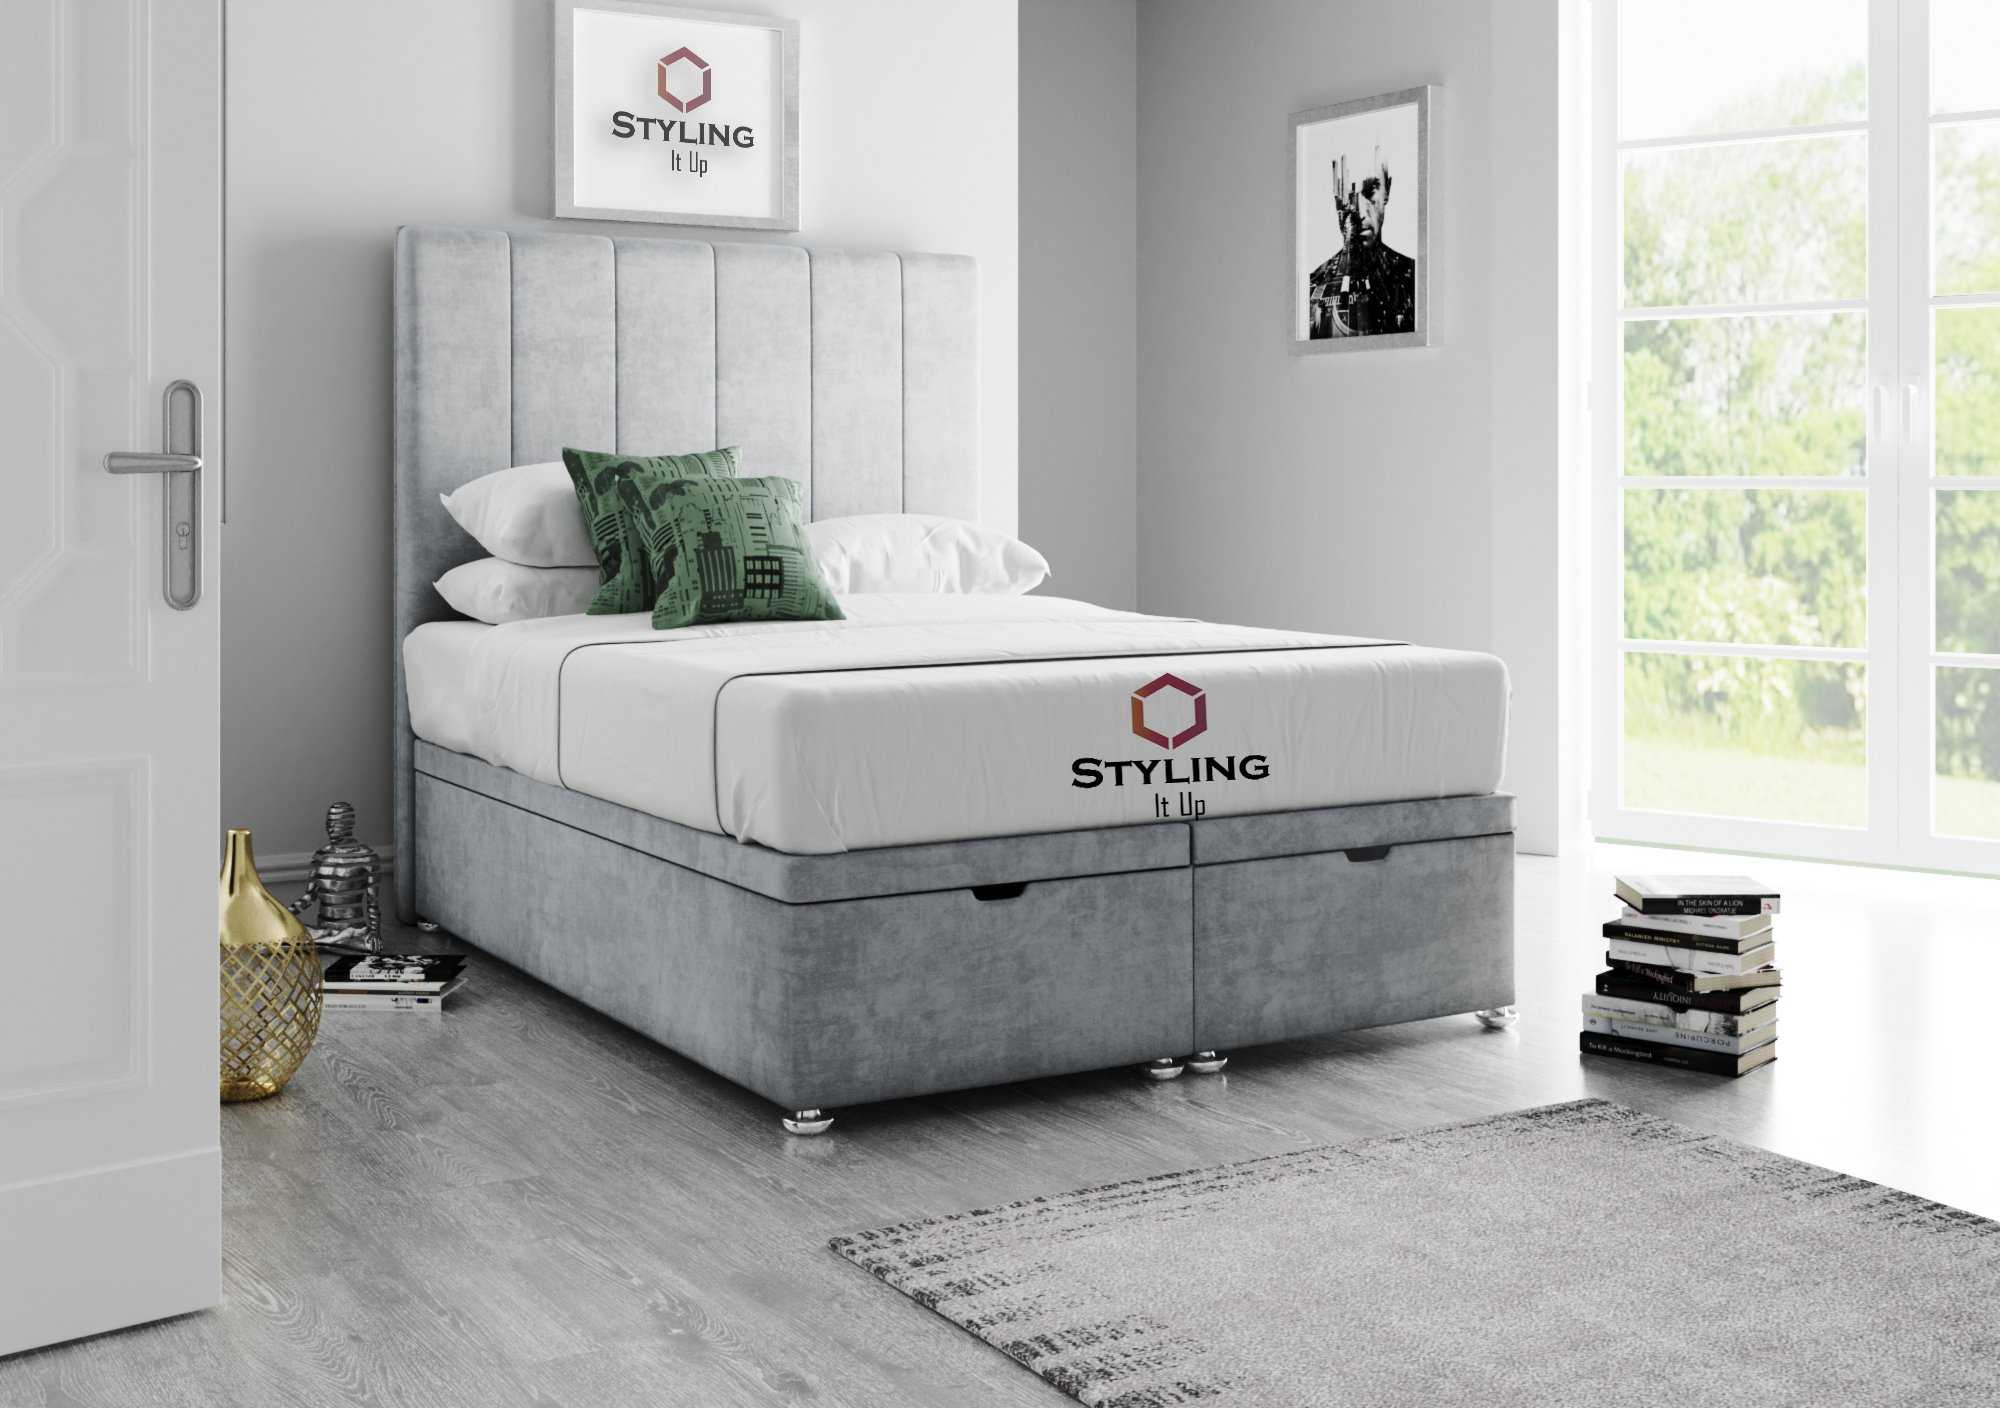 Aurelia Striped Divan Ottoman Storage Bed - Styling It Up